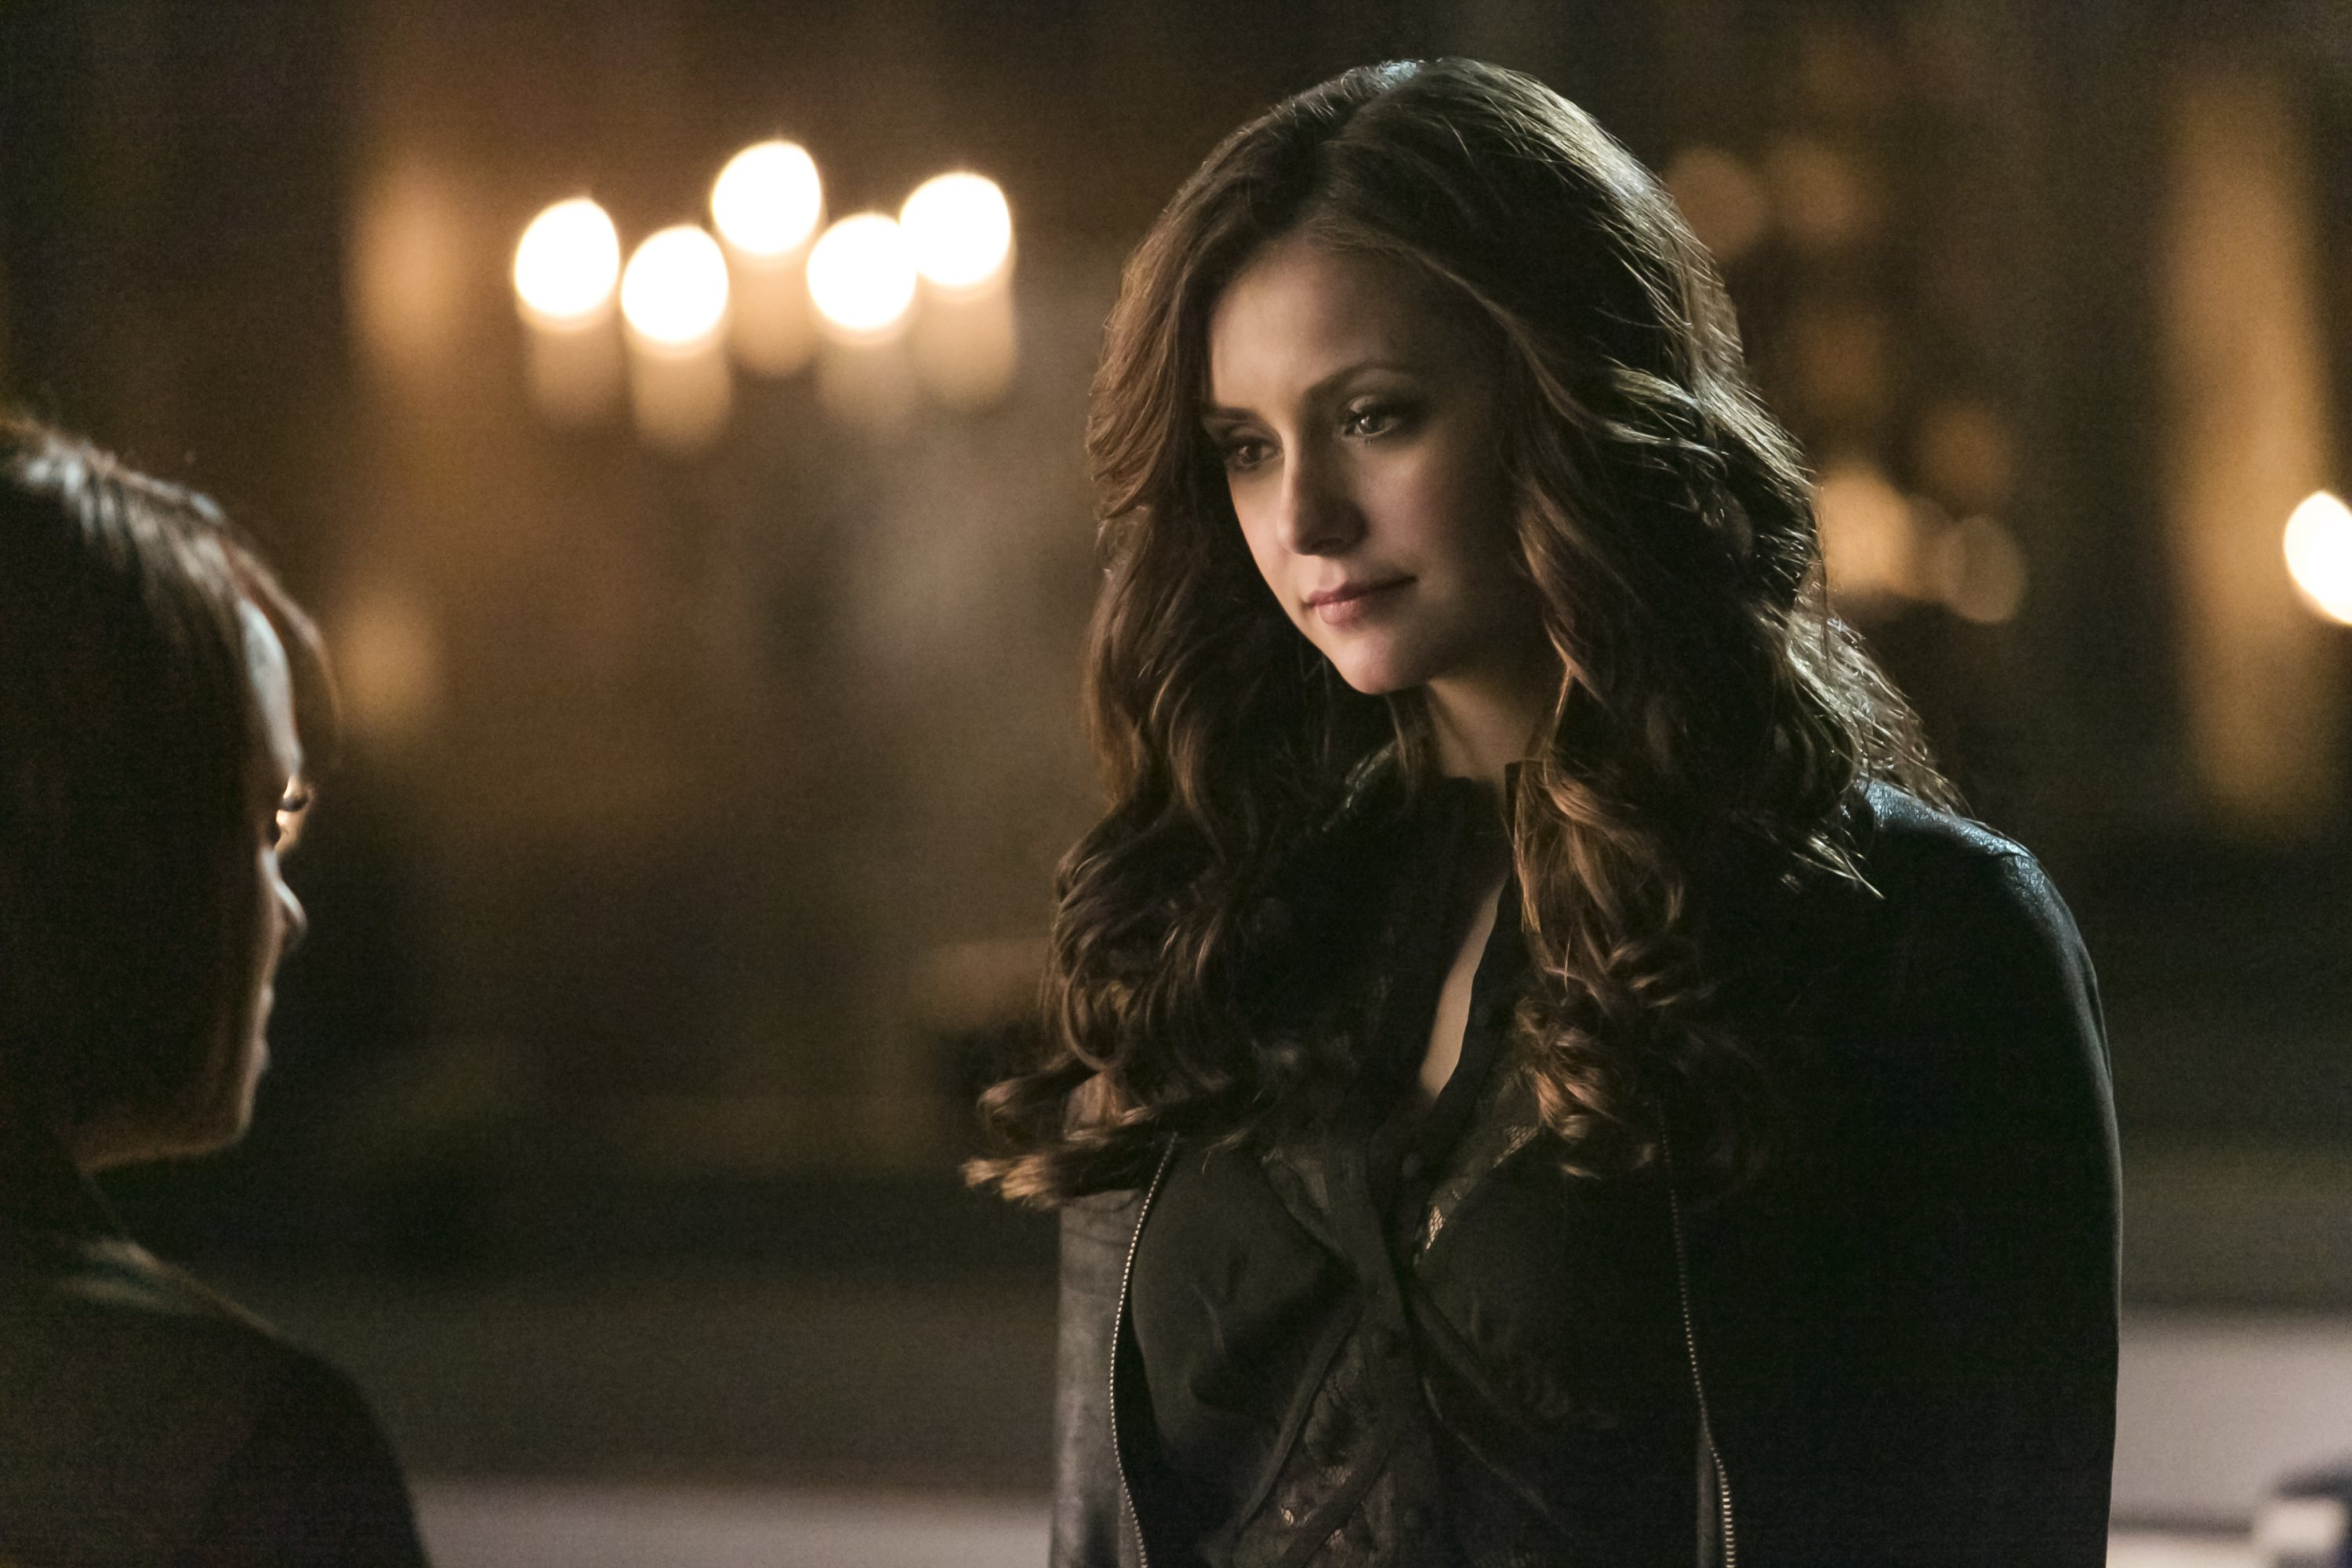 The Vampire Diaries Season 5 Spoilers and Speculations: Where is Katherine?